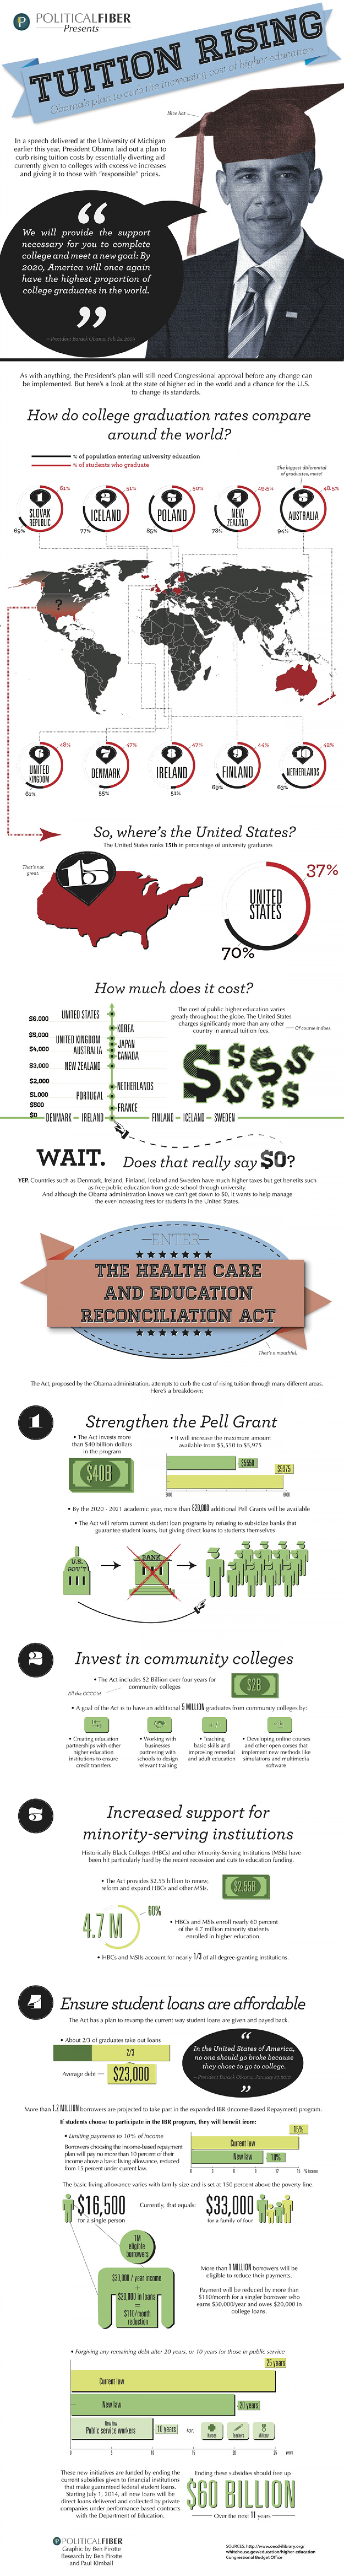 Tuition Rising Infographic